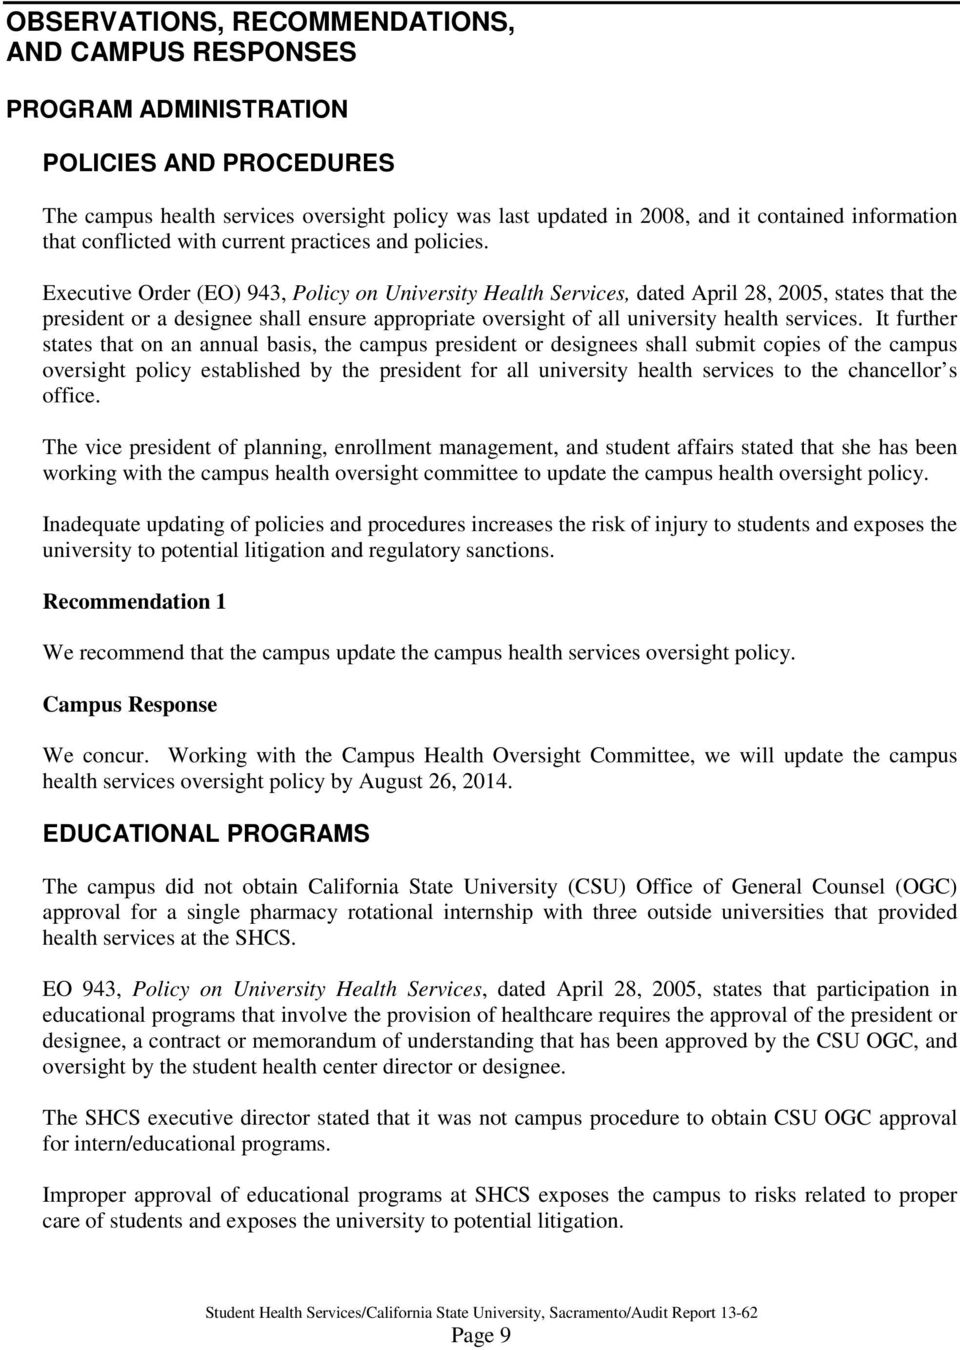 Executive Order (EO) 943, Policy on University Health Services, dated April 28, 2005, states that the president or a designee shall ensure appropriate oversight of all university health services.